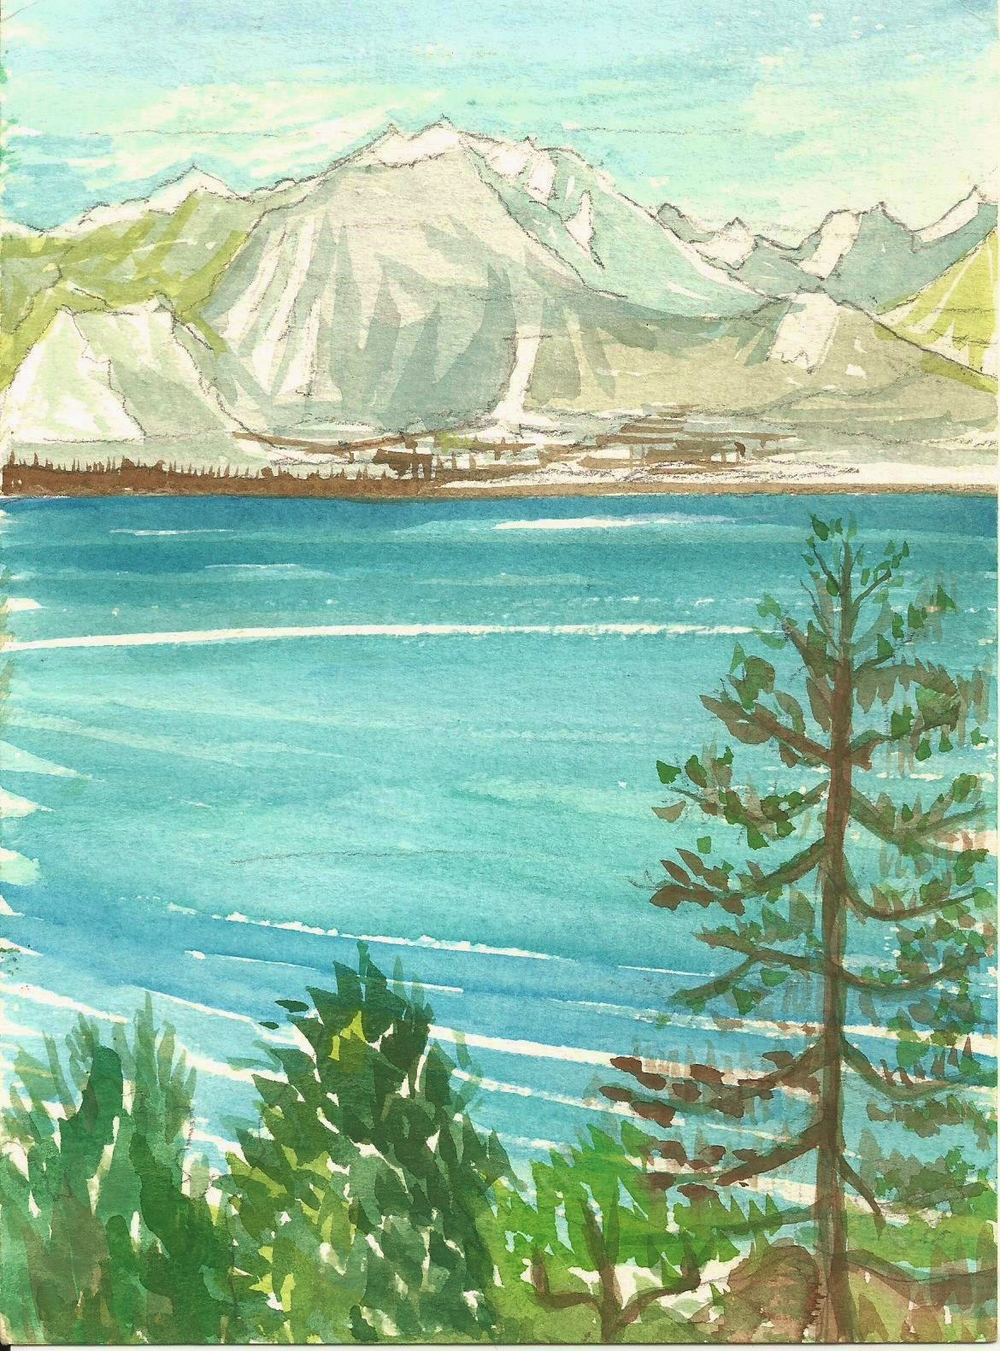 poem book Divonne to Alps watercolor.jpg